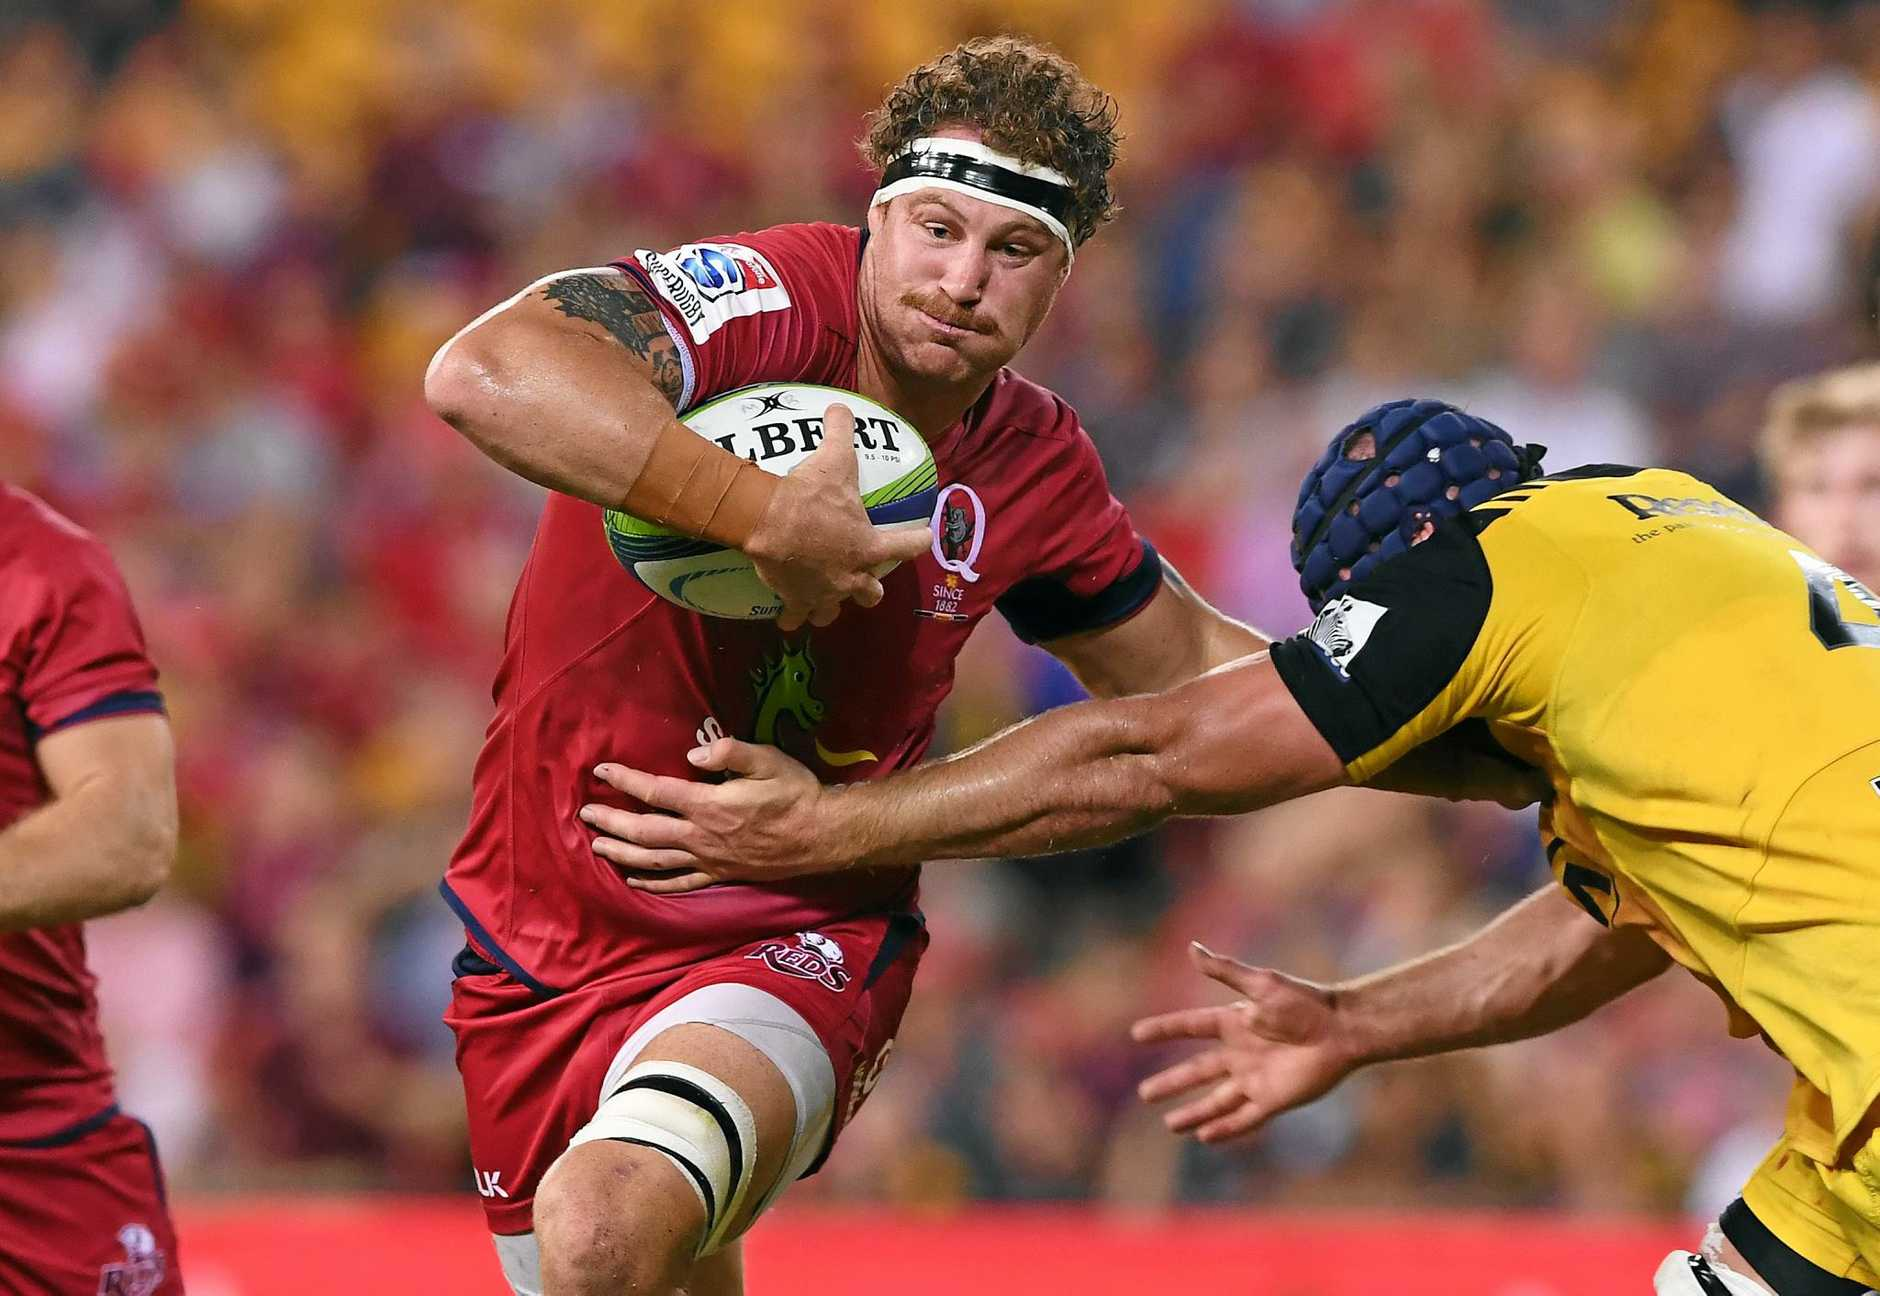 Reds player Scott Higgenbotham during the Round 6 Super Rugby match between the Queensland Reds and the Hurricanes at Suncorp Stadium in Brisbane, Saturday, April 1, 2017. (AAP Image/Dave Hunt) NO ARCHIVING, EDITORIAL USE ONLY